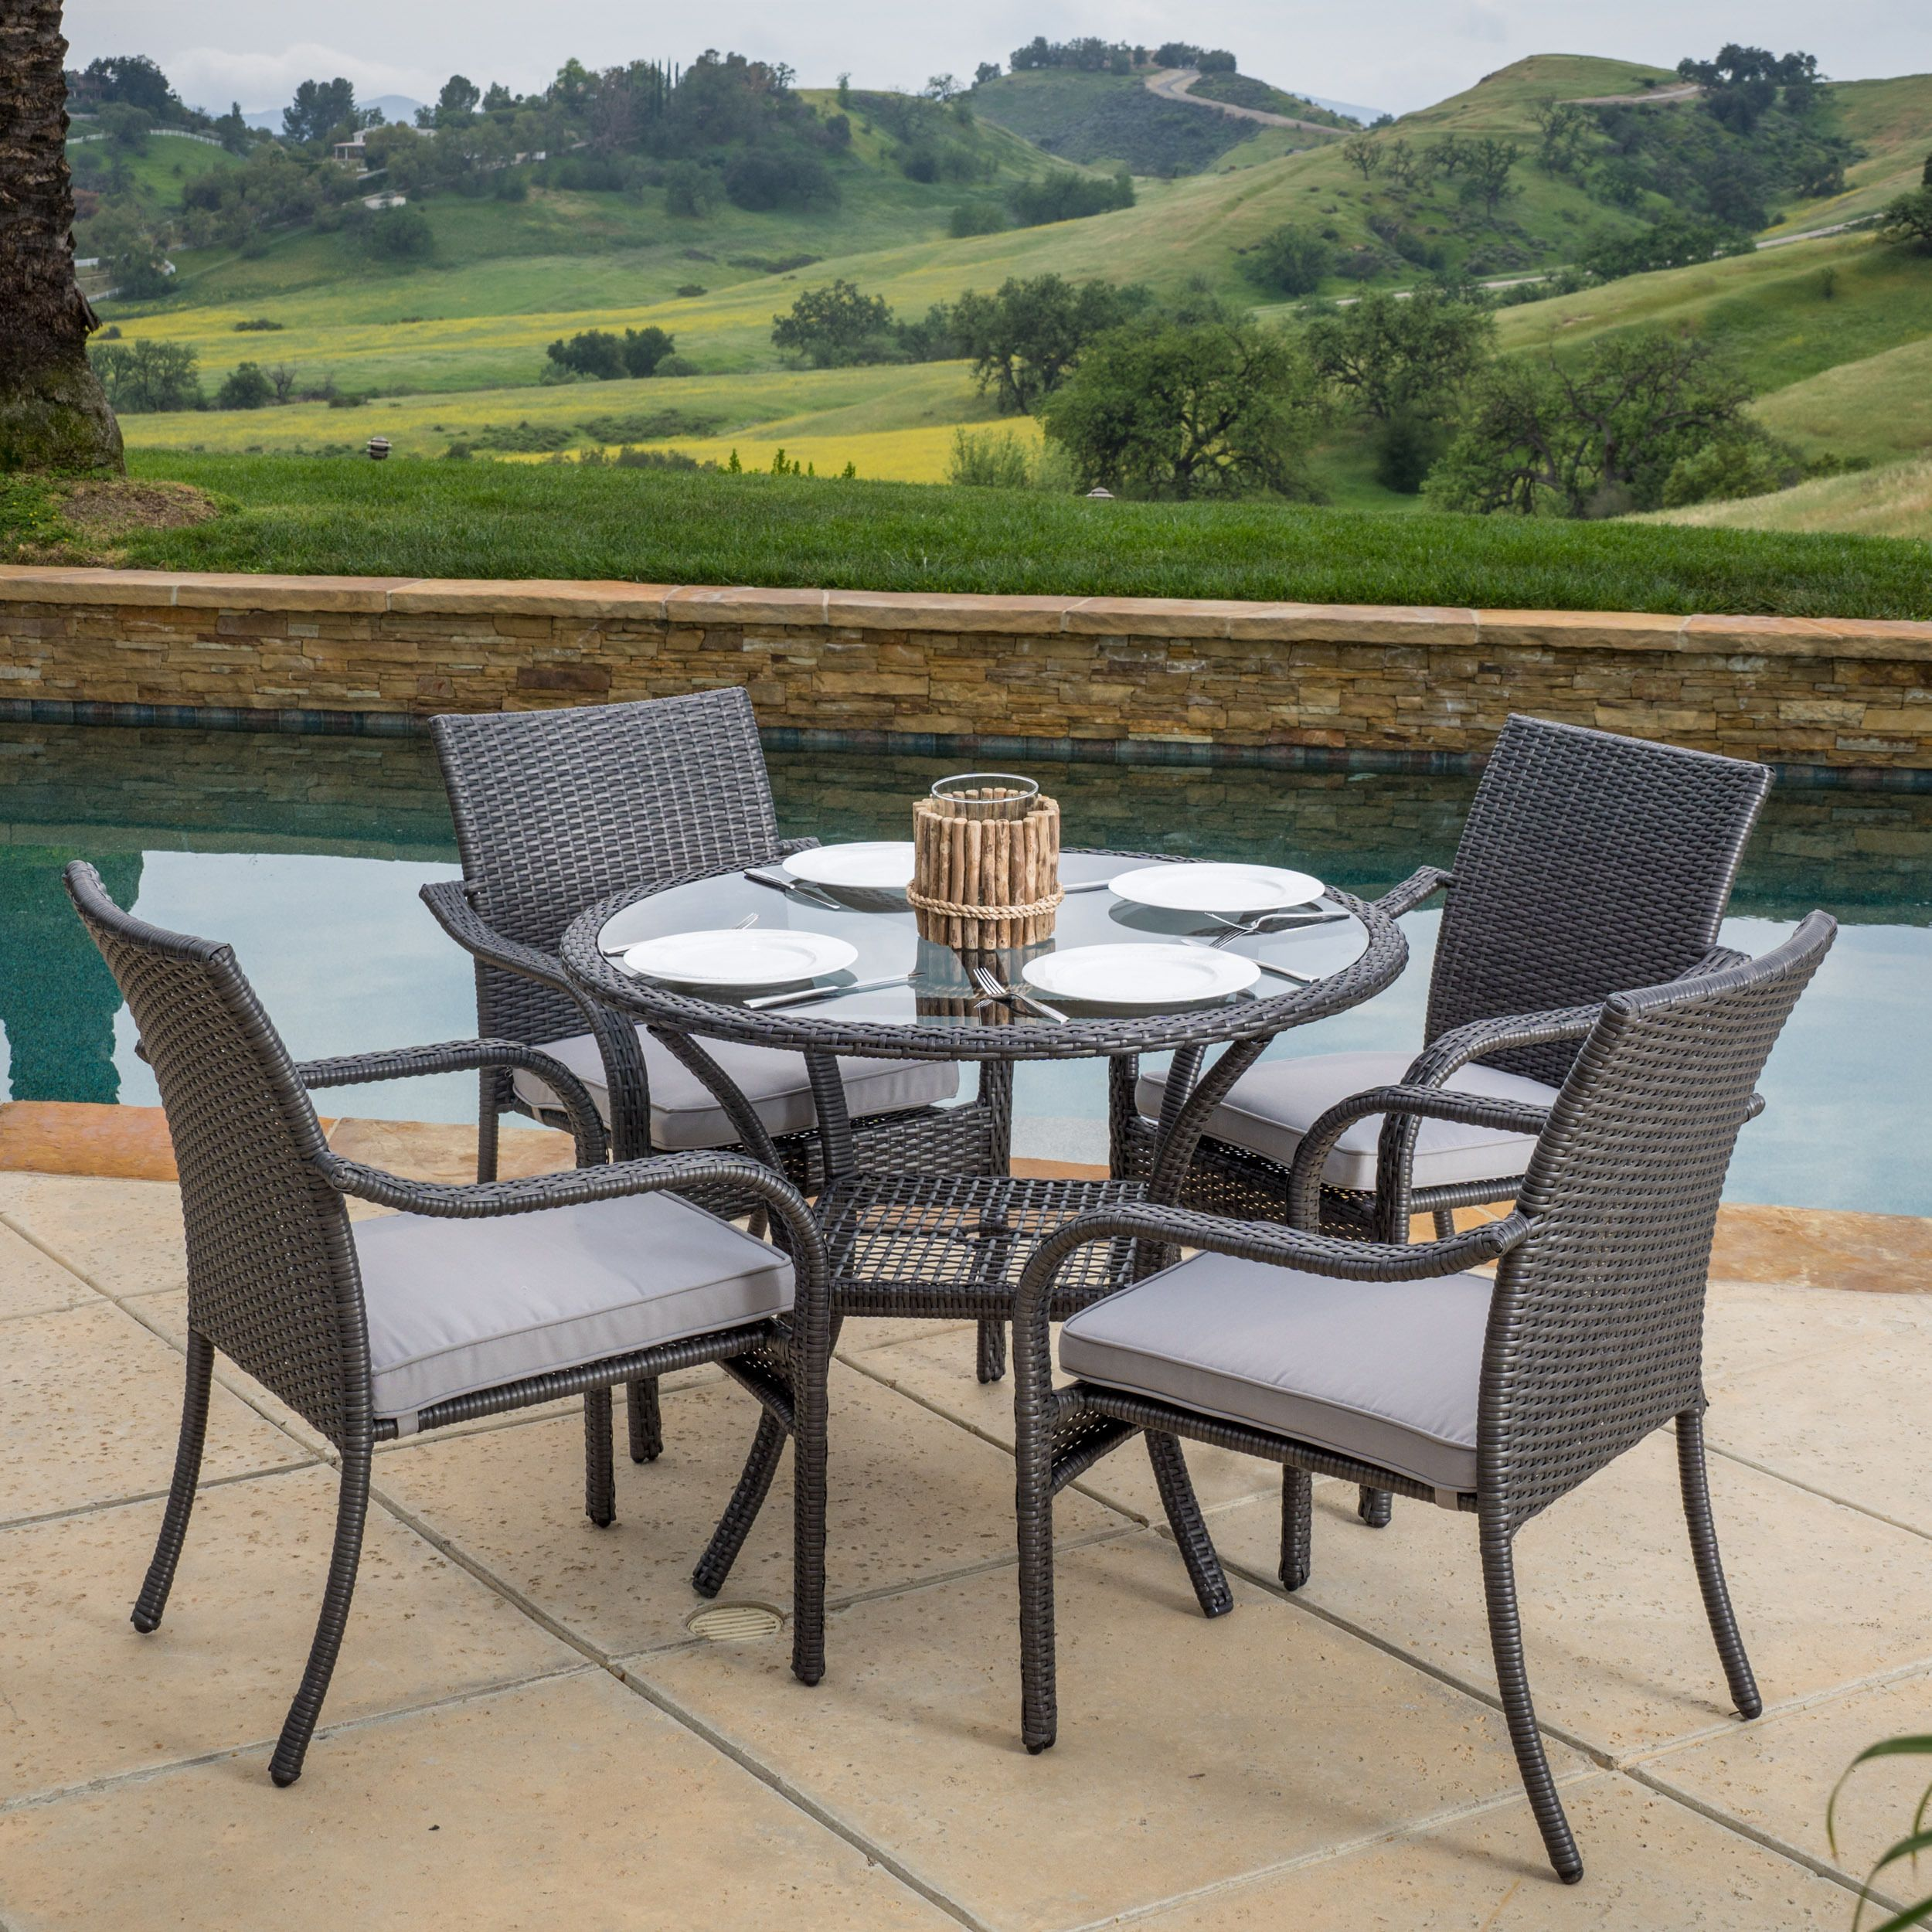 This set offers a solid foundation of metal and resin wicker juxtaposed with a sleek fabric to create a combination look that is not only trendy but